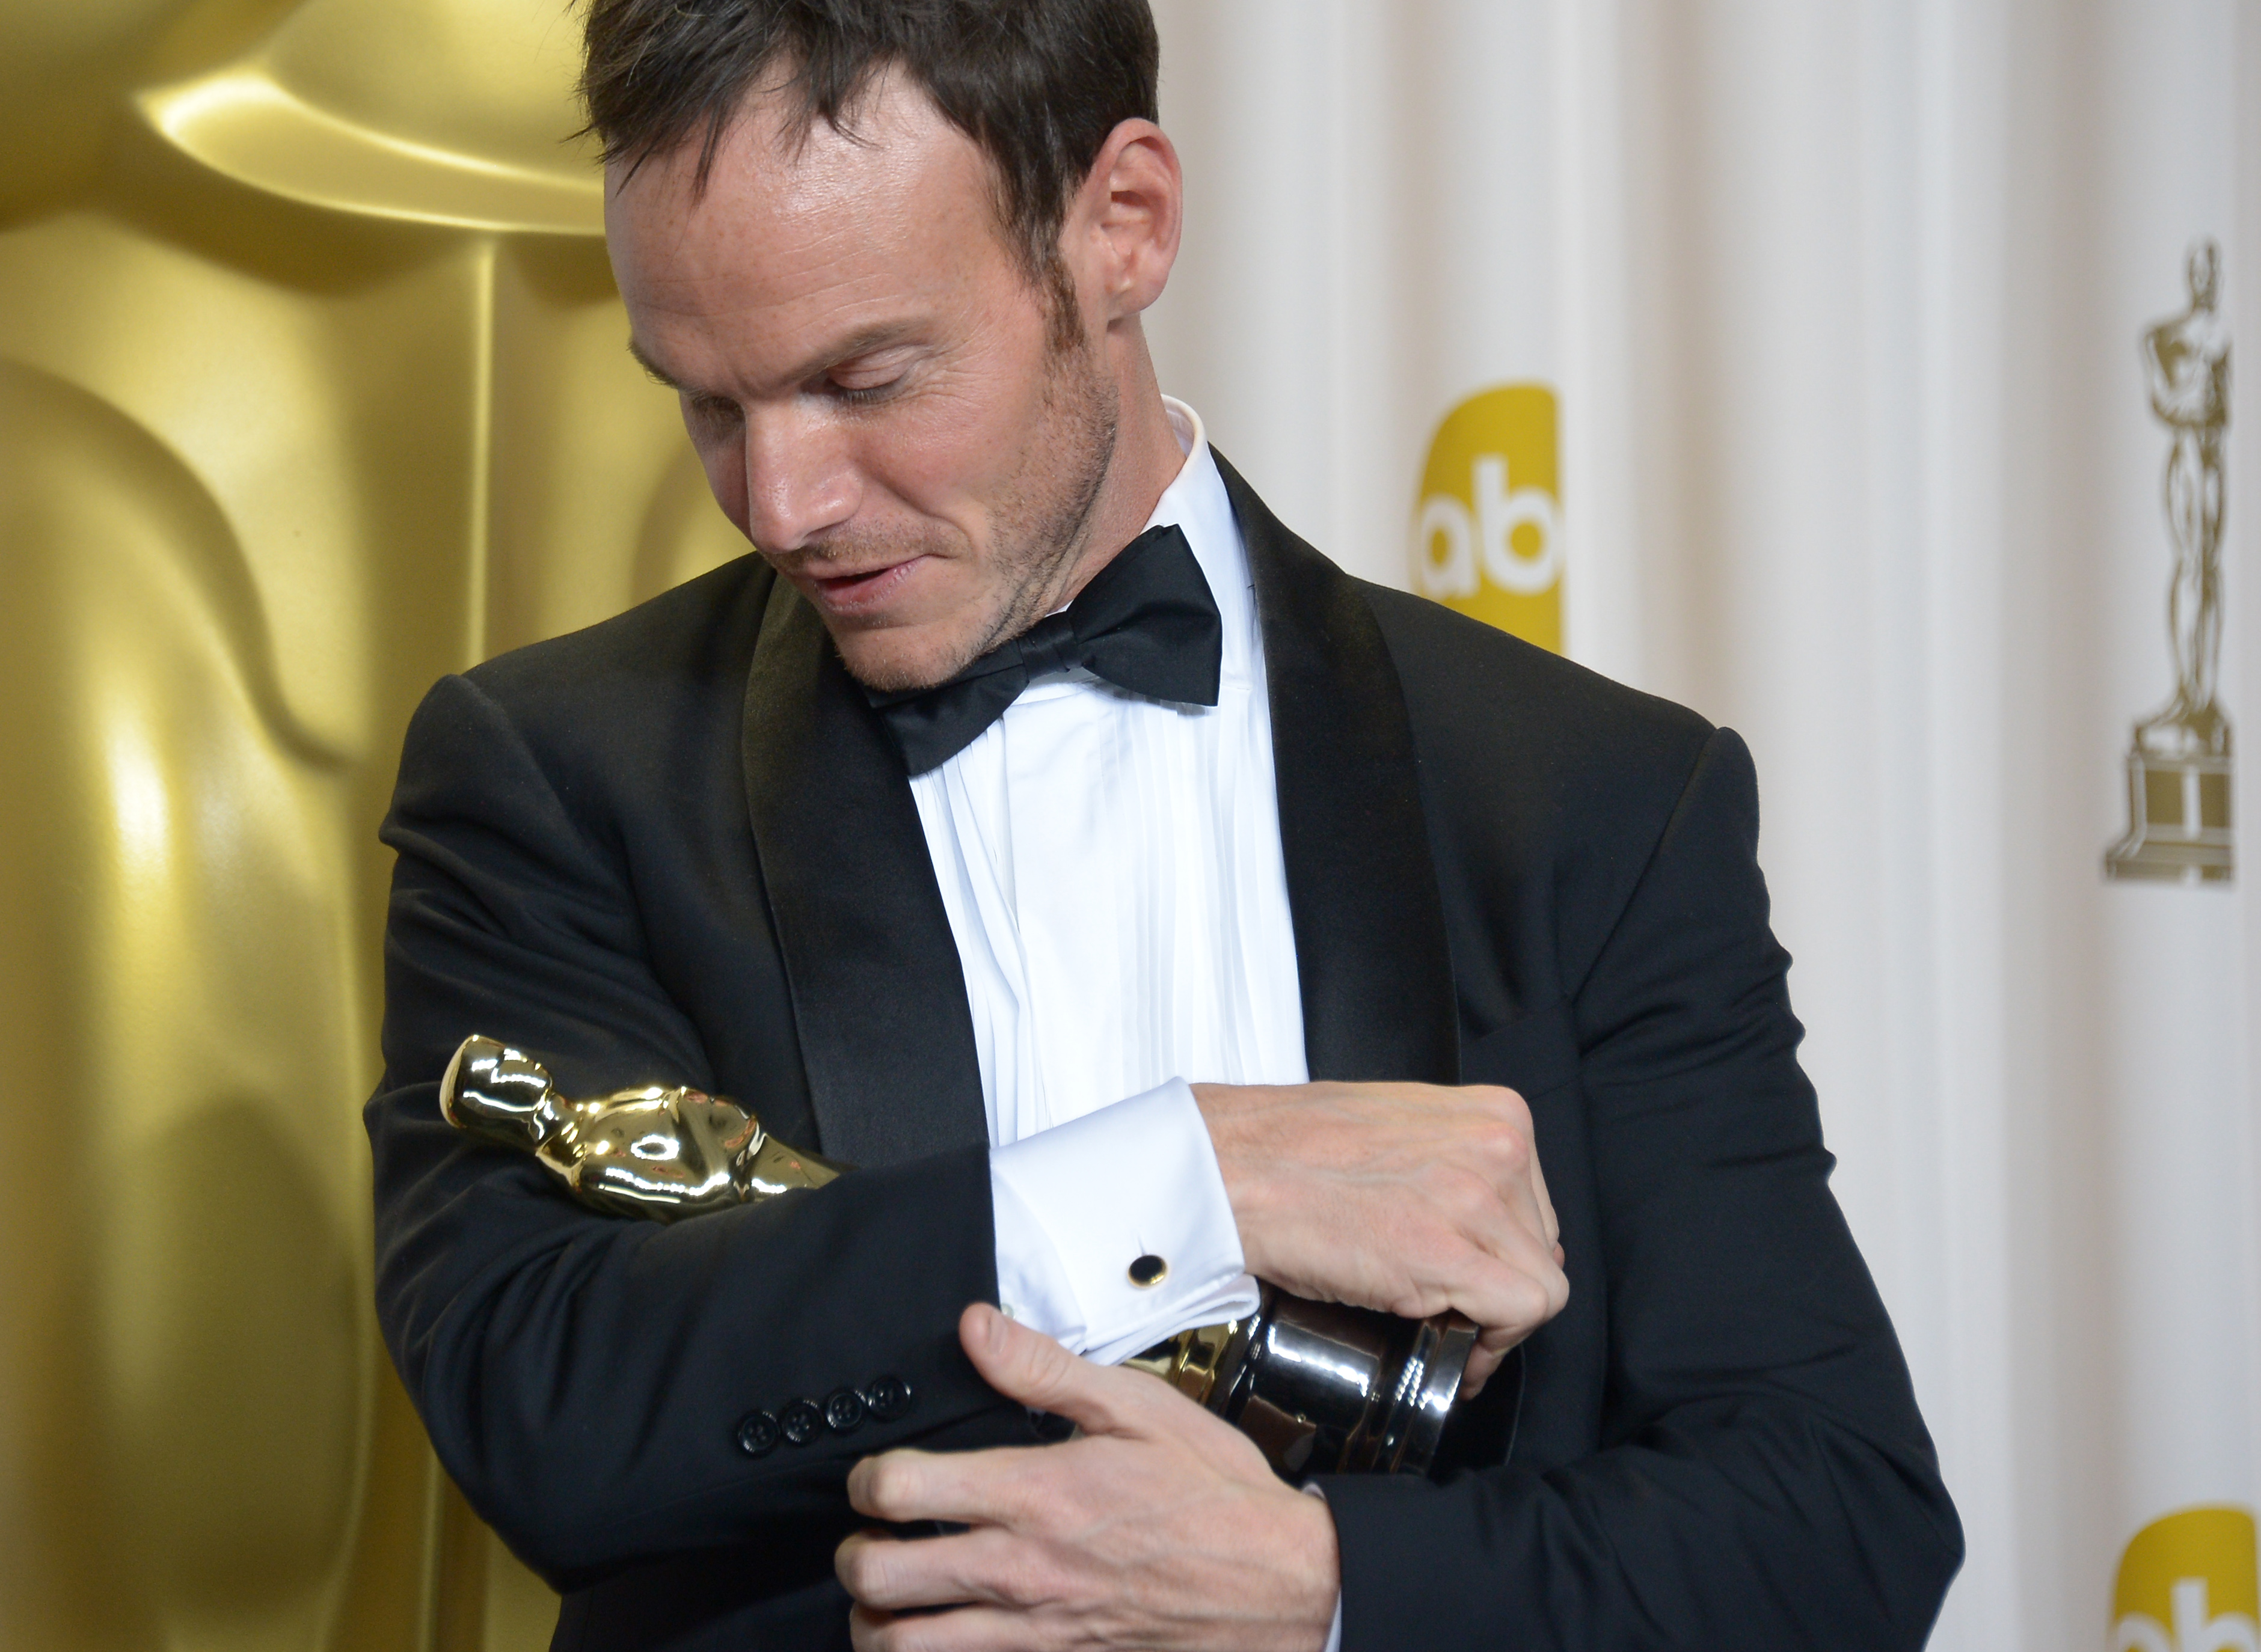 Chris Terrio segurando seu bebê (photo by theurbandaily.com)